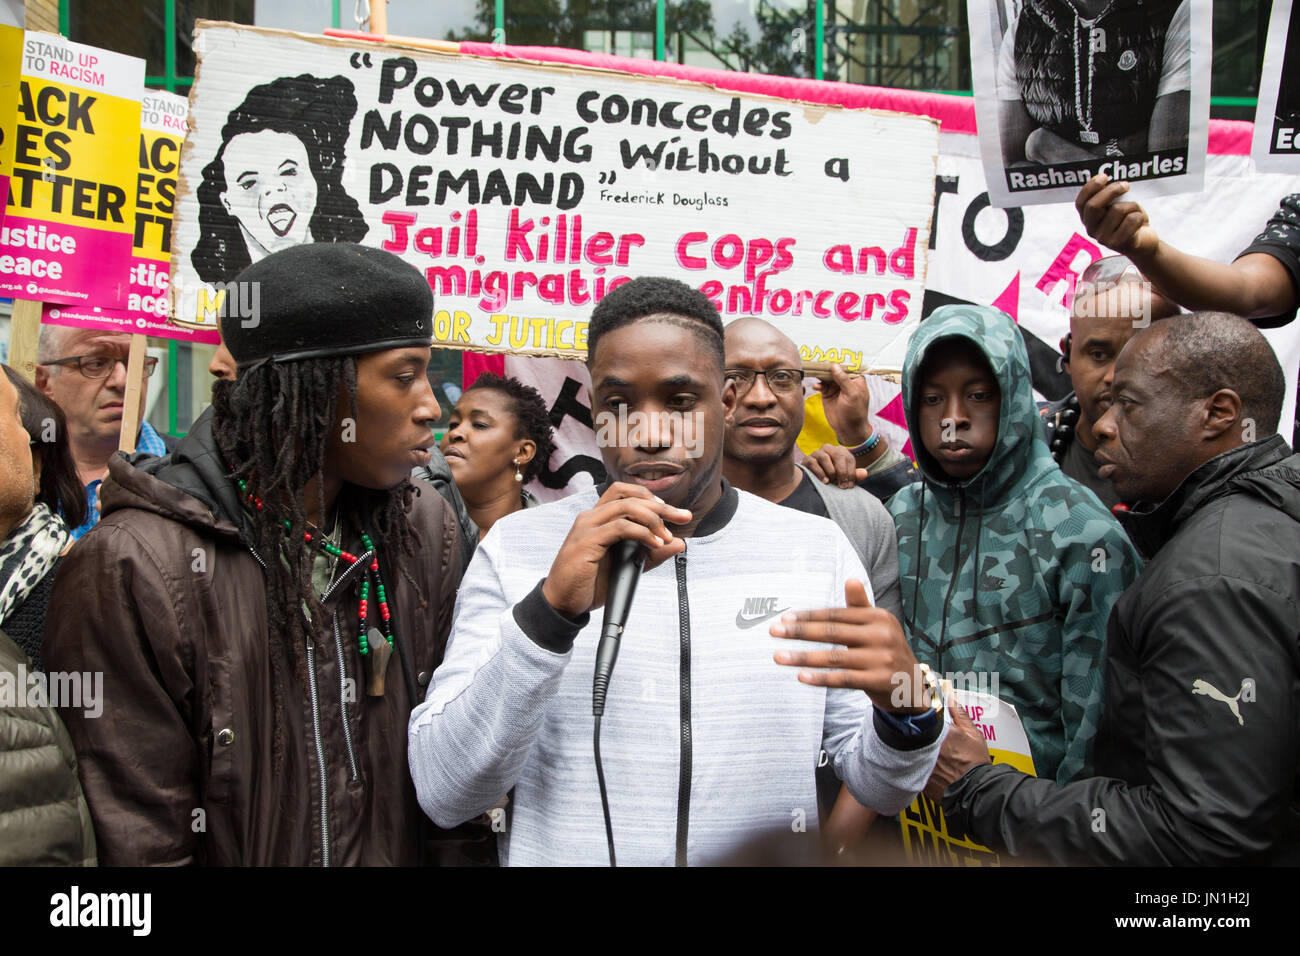 London, UK. 29th July, 2017. Protesters at a vigil for Rashan Charles out side Stoke Newington Police Station in London Credit: Thabo Jaiyesimi/Alamy Live News - Stock Image